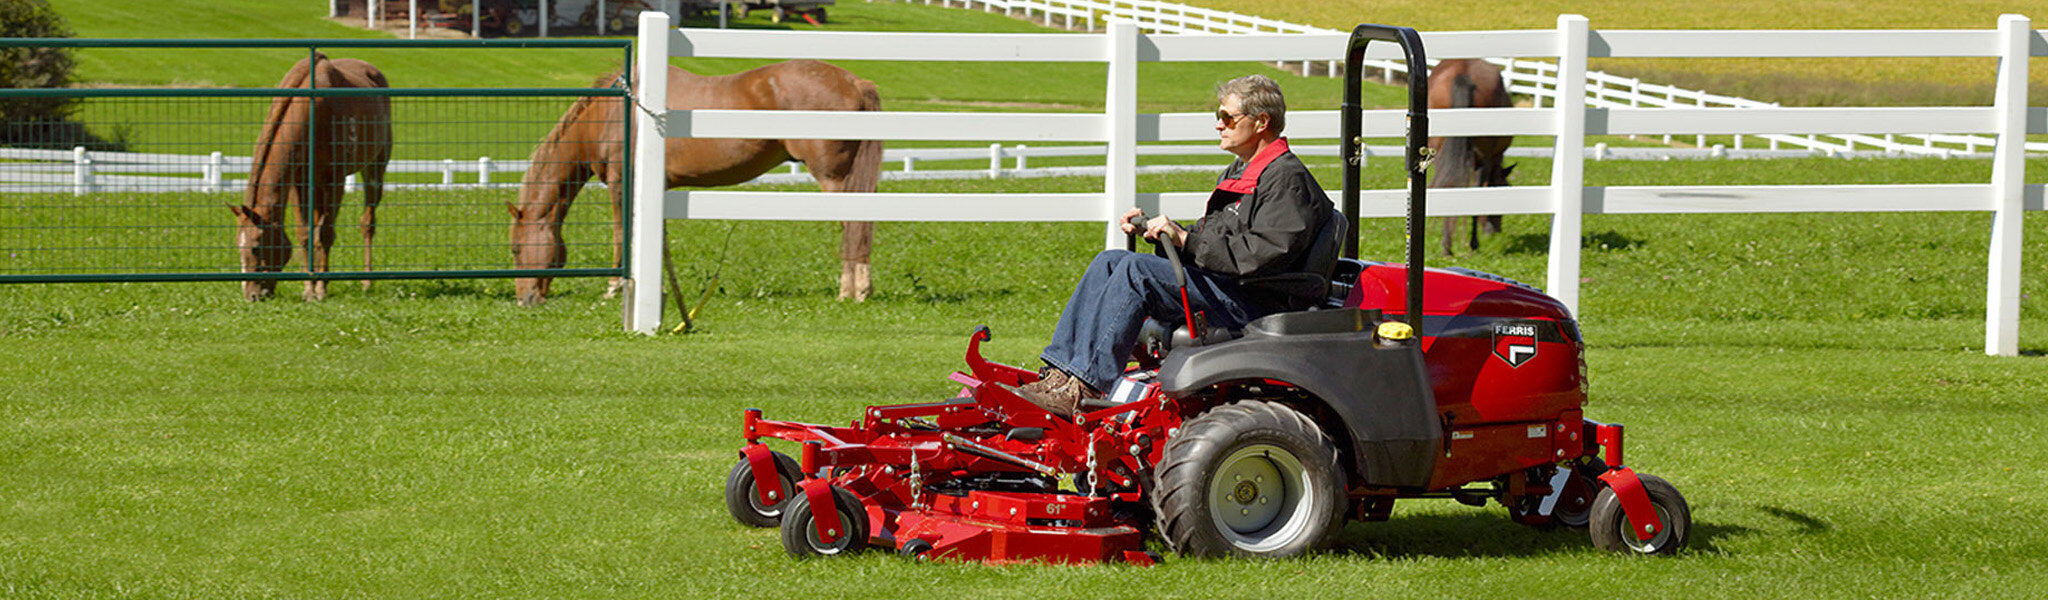 Beard's Farm Supply | Tractor, mowers and agriculture